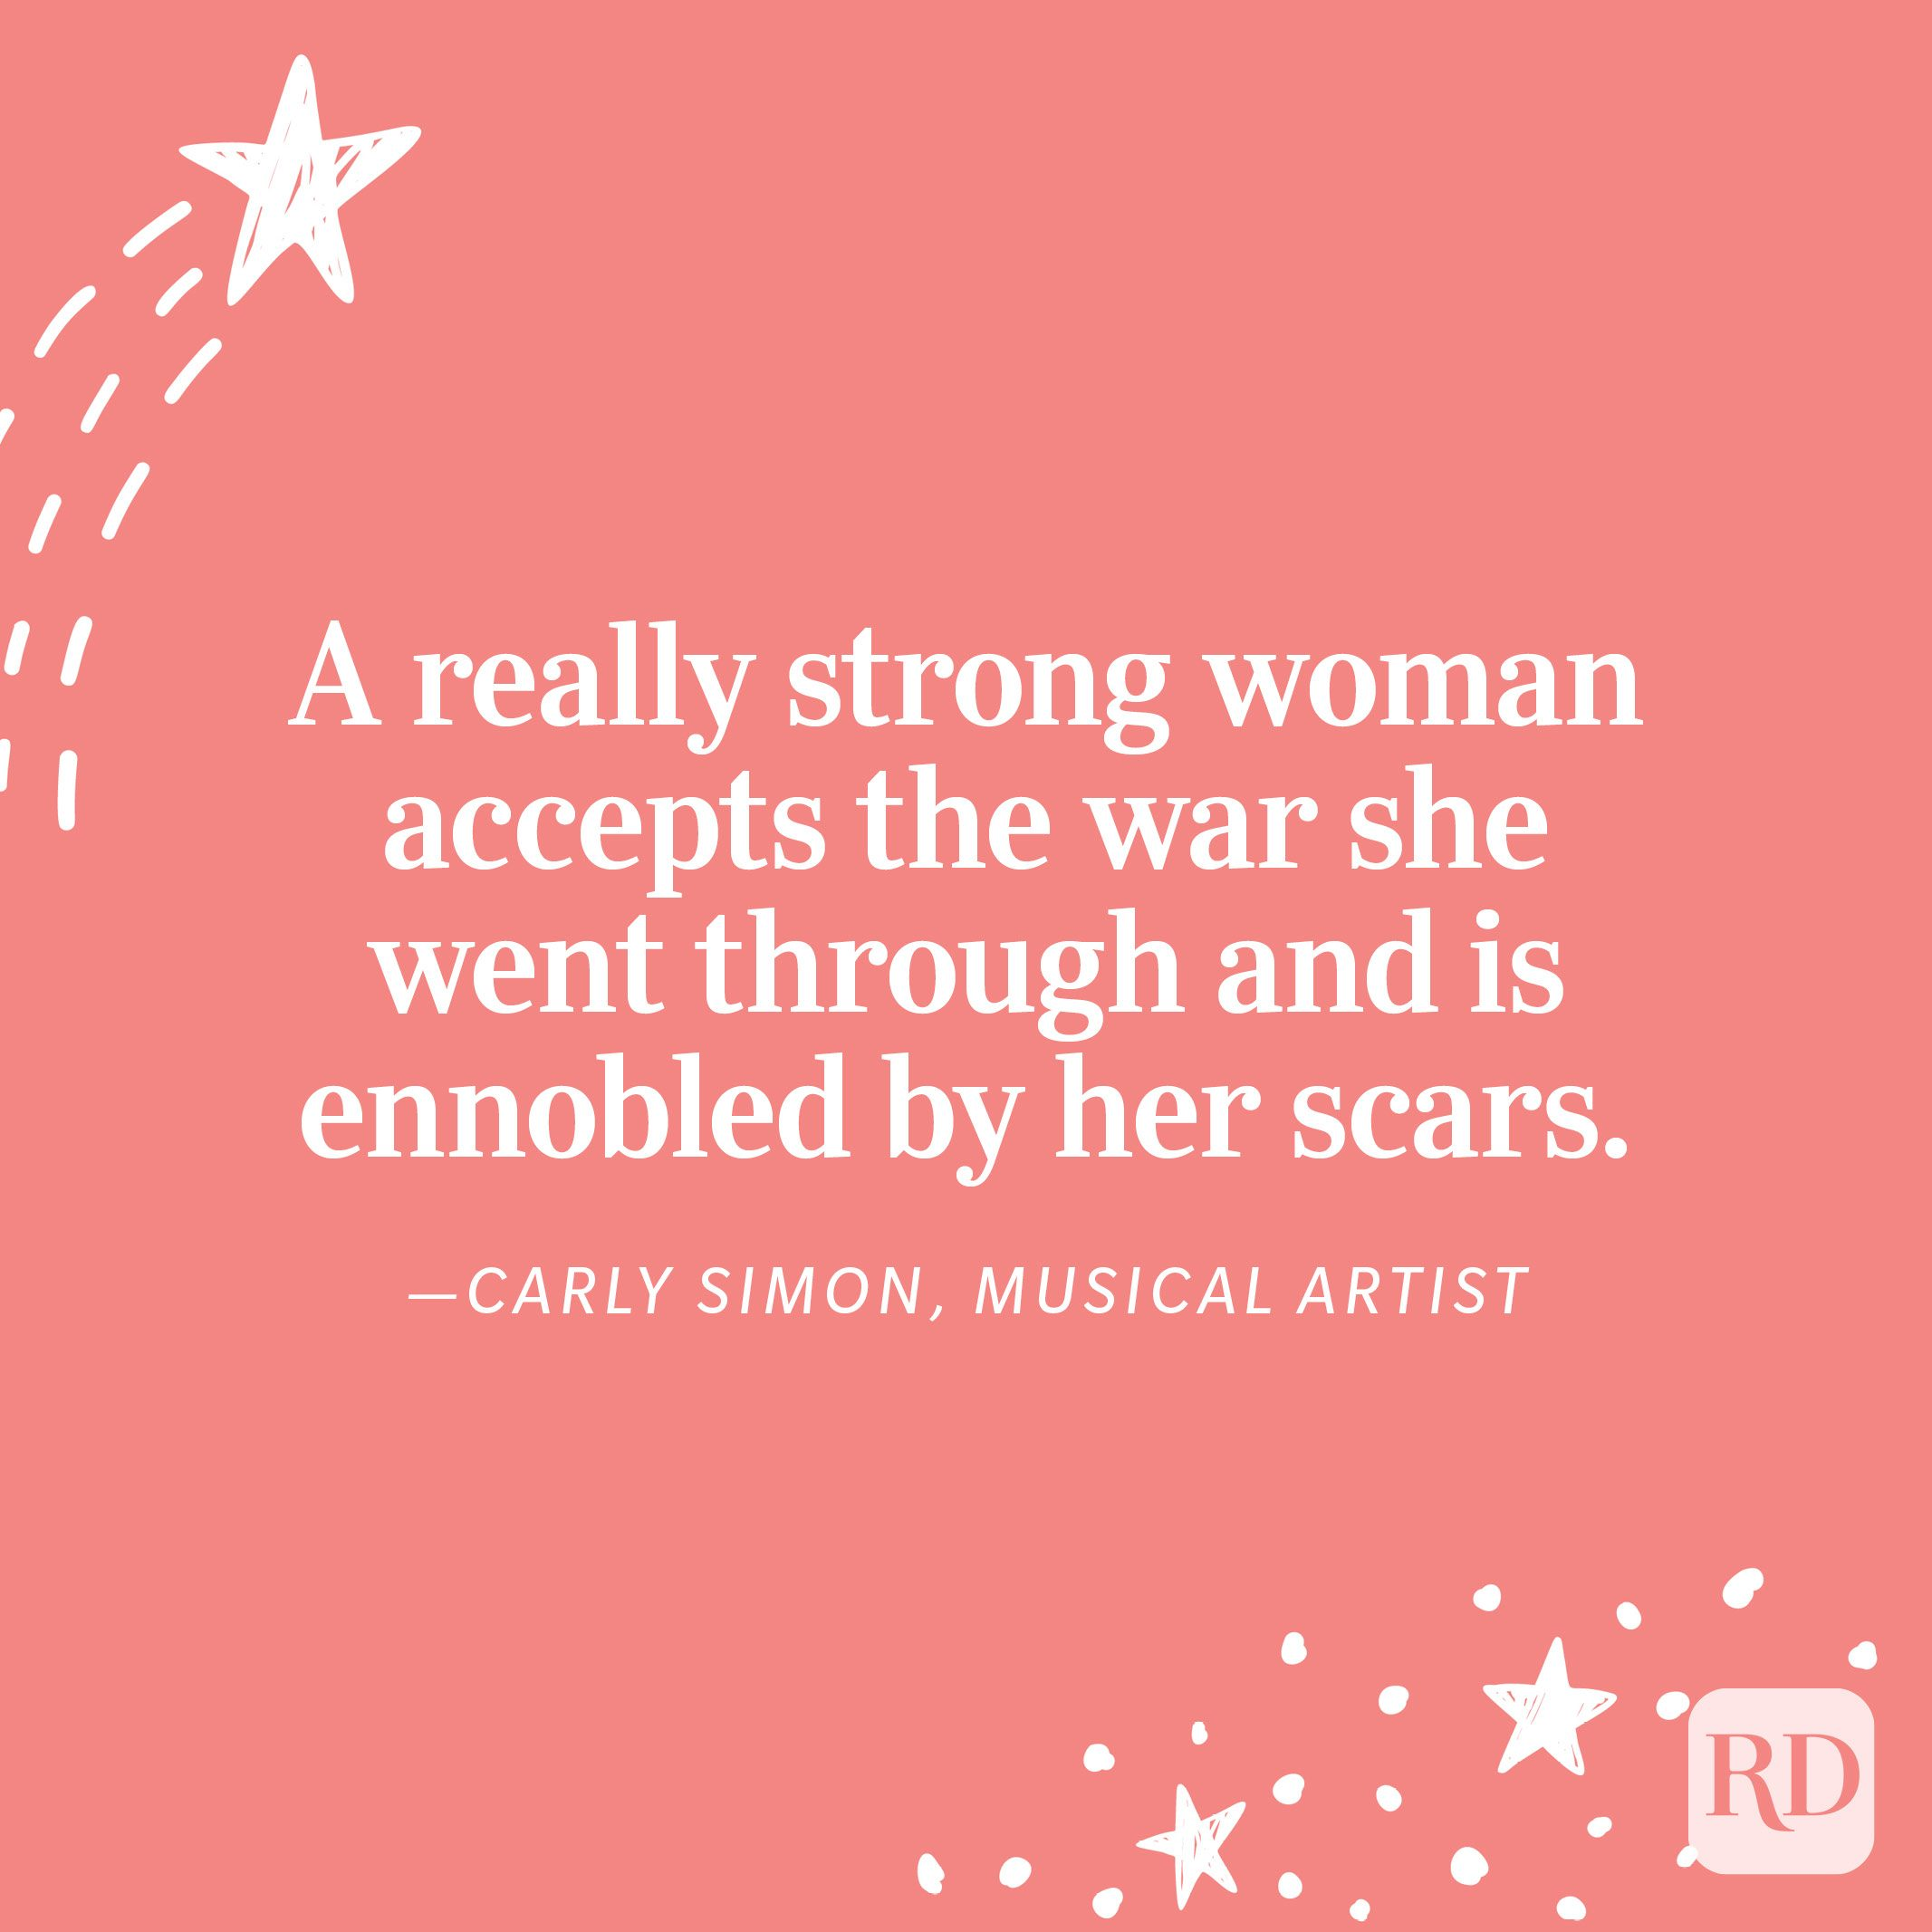 """""""A really strong woman accepts the war she went through and is ennobled by her scars."""" —Carly Simon, musical artist"""